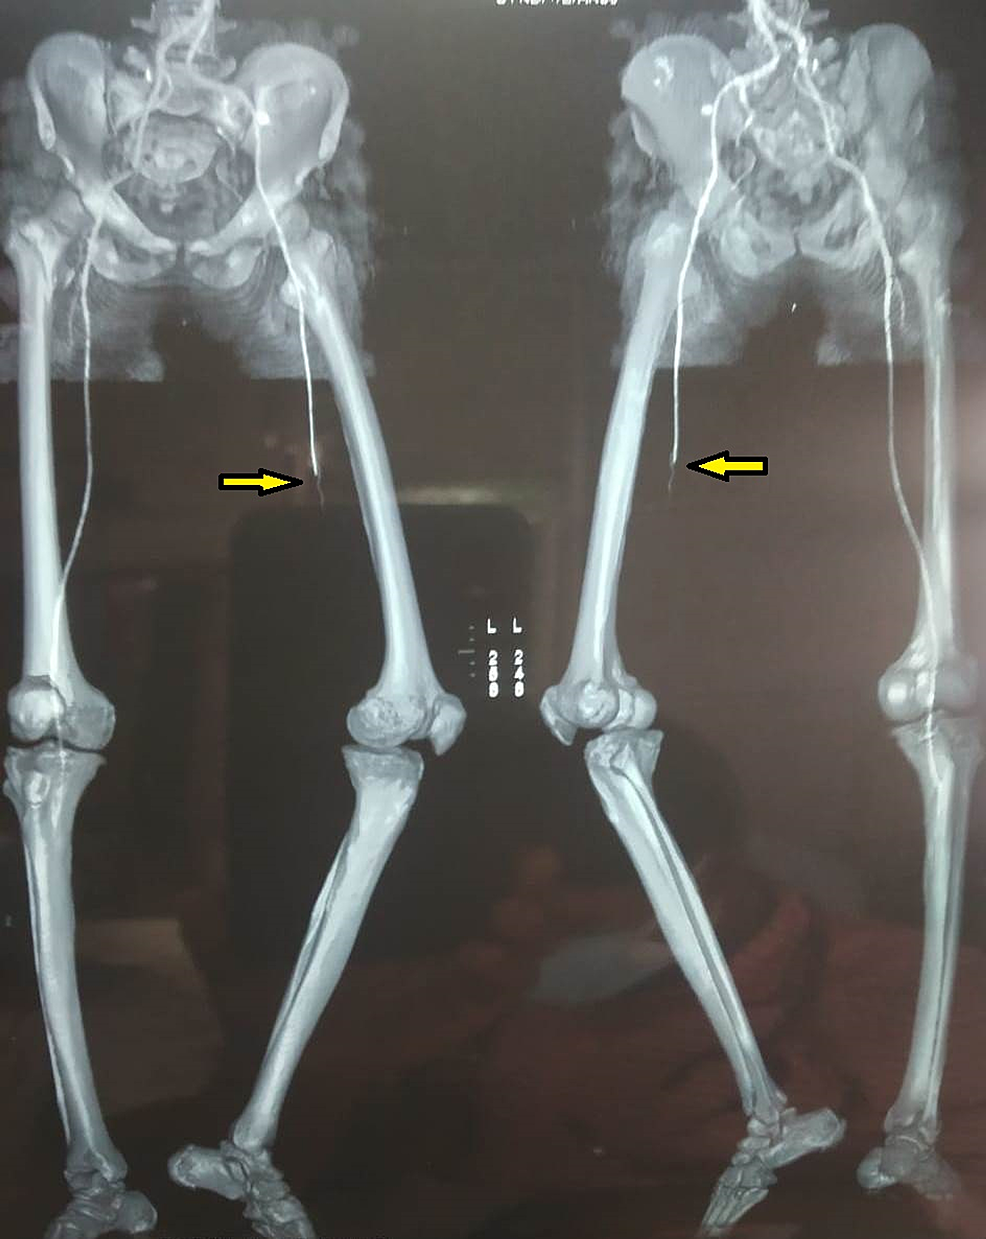 3D-Virtual-reconstructed-CTA-image-showing-complete-blockage-of-the-mid-superficial-femoral-artery,-popliteal-artery,-and-infra-popliteal-artery-with-poor-collateral-status-(Arrow).-There-is-no-distal-reformation-of-the-vessels